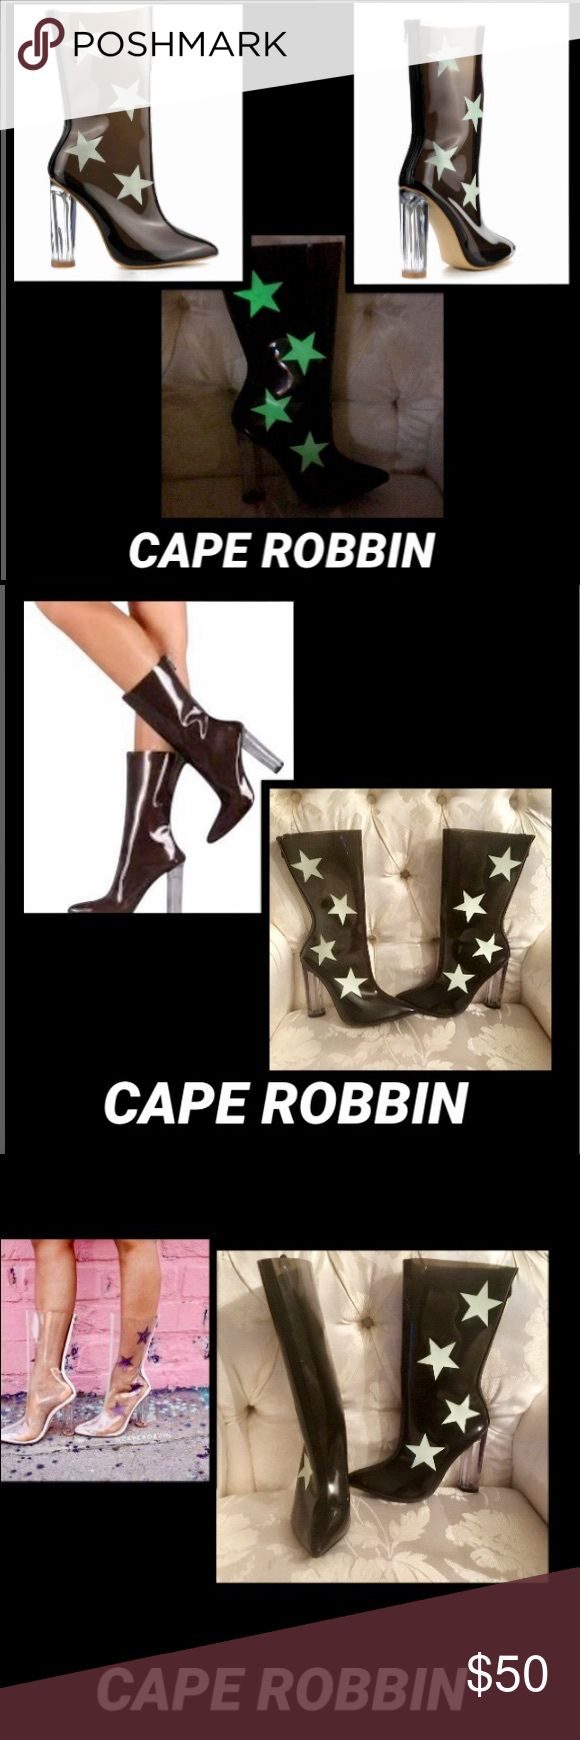 🦋Cape Robbin Ella Glow inthe Dark Star LuciteBoot Cape Robbin Ella Glow in the Dark Star Lucite Boot These ultra cool boots feature a totally transparent construction that lets ur pedi peek through, pointed toe, glow in the dark star appliques clear lucite block heel, and zip back closures Sz 9 Cape Robbin Shoes Ankle Boots & Booties